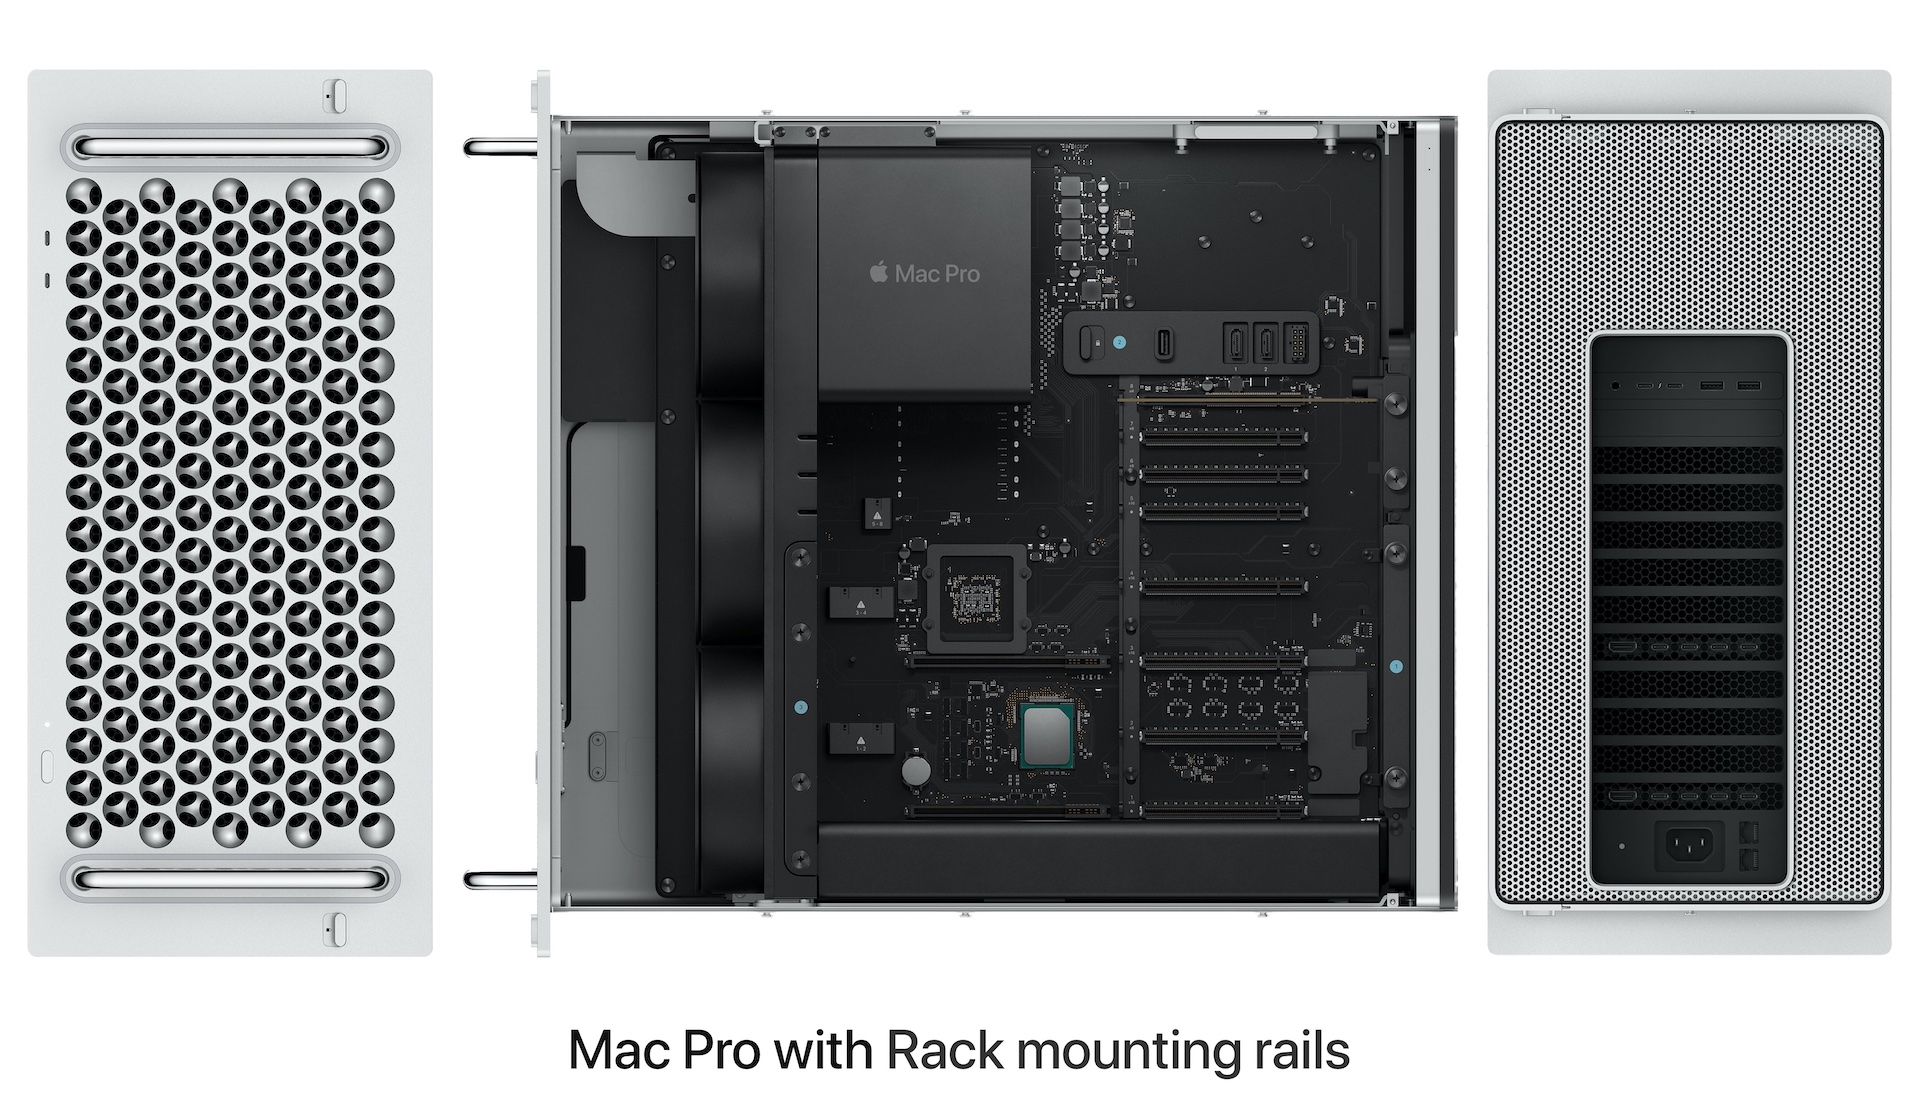 Mac Pro (2019) with Rack mounting rails